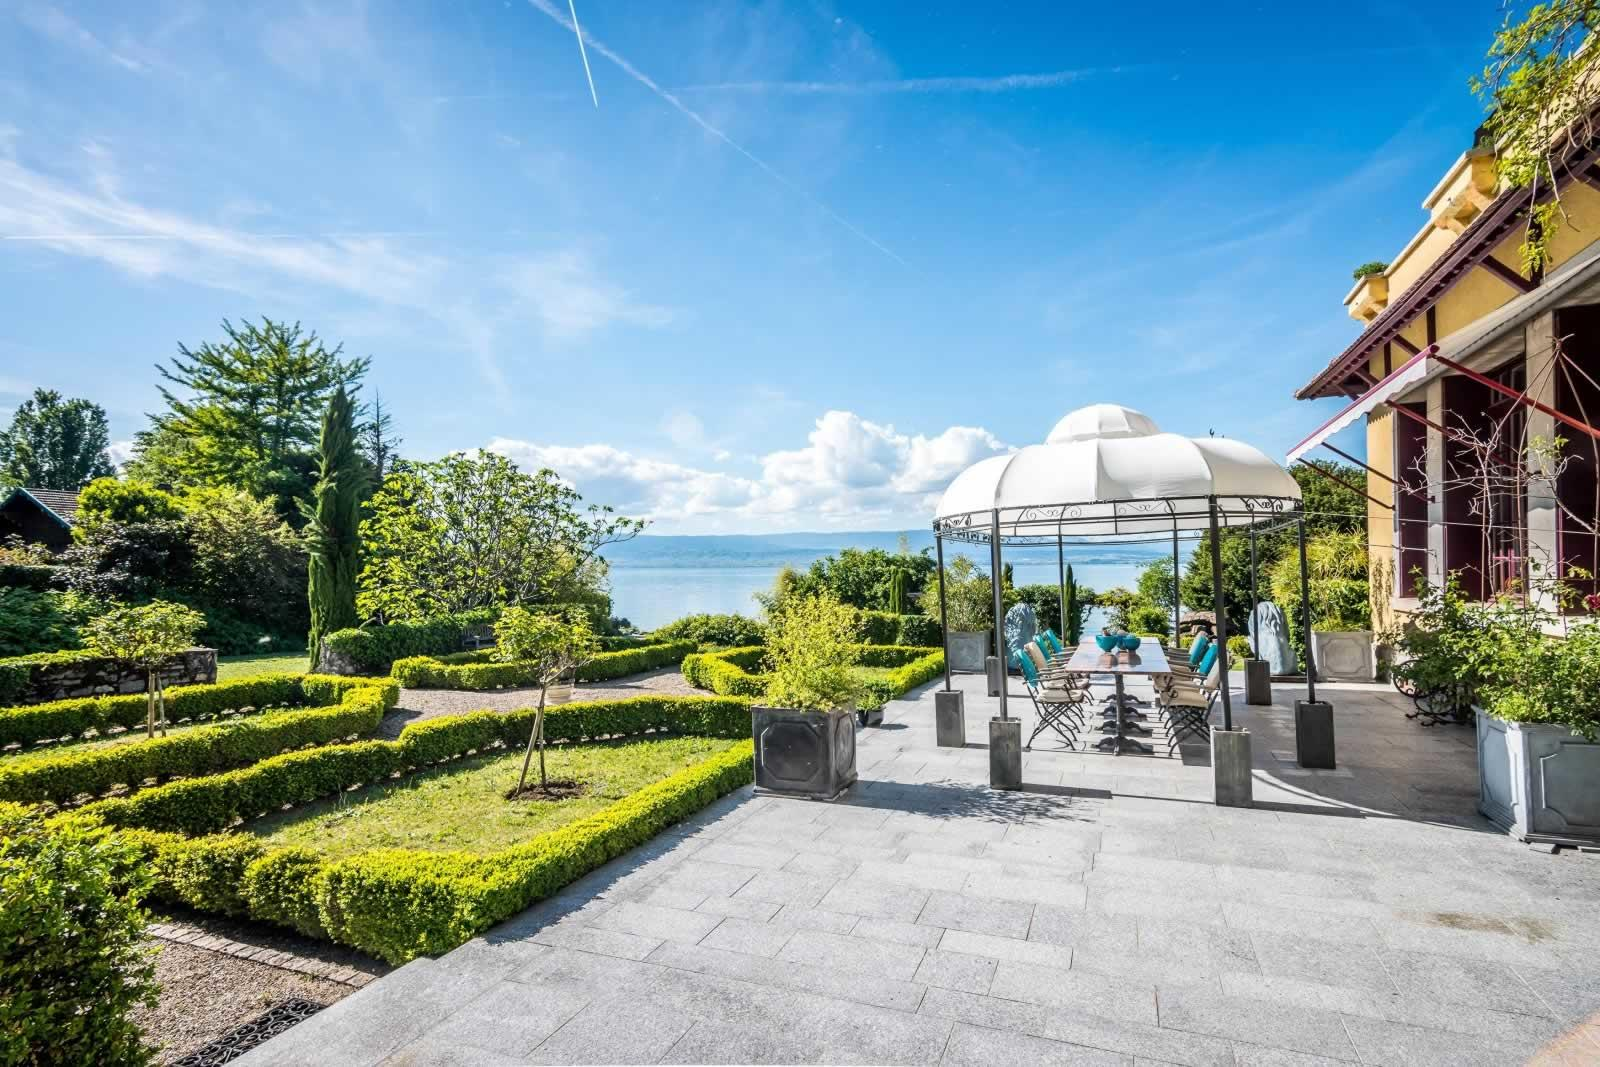 luxury-lakefront-estate-for-sale-thonon-les-bains-ground-garden-fireplace-terraces